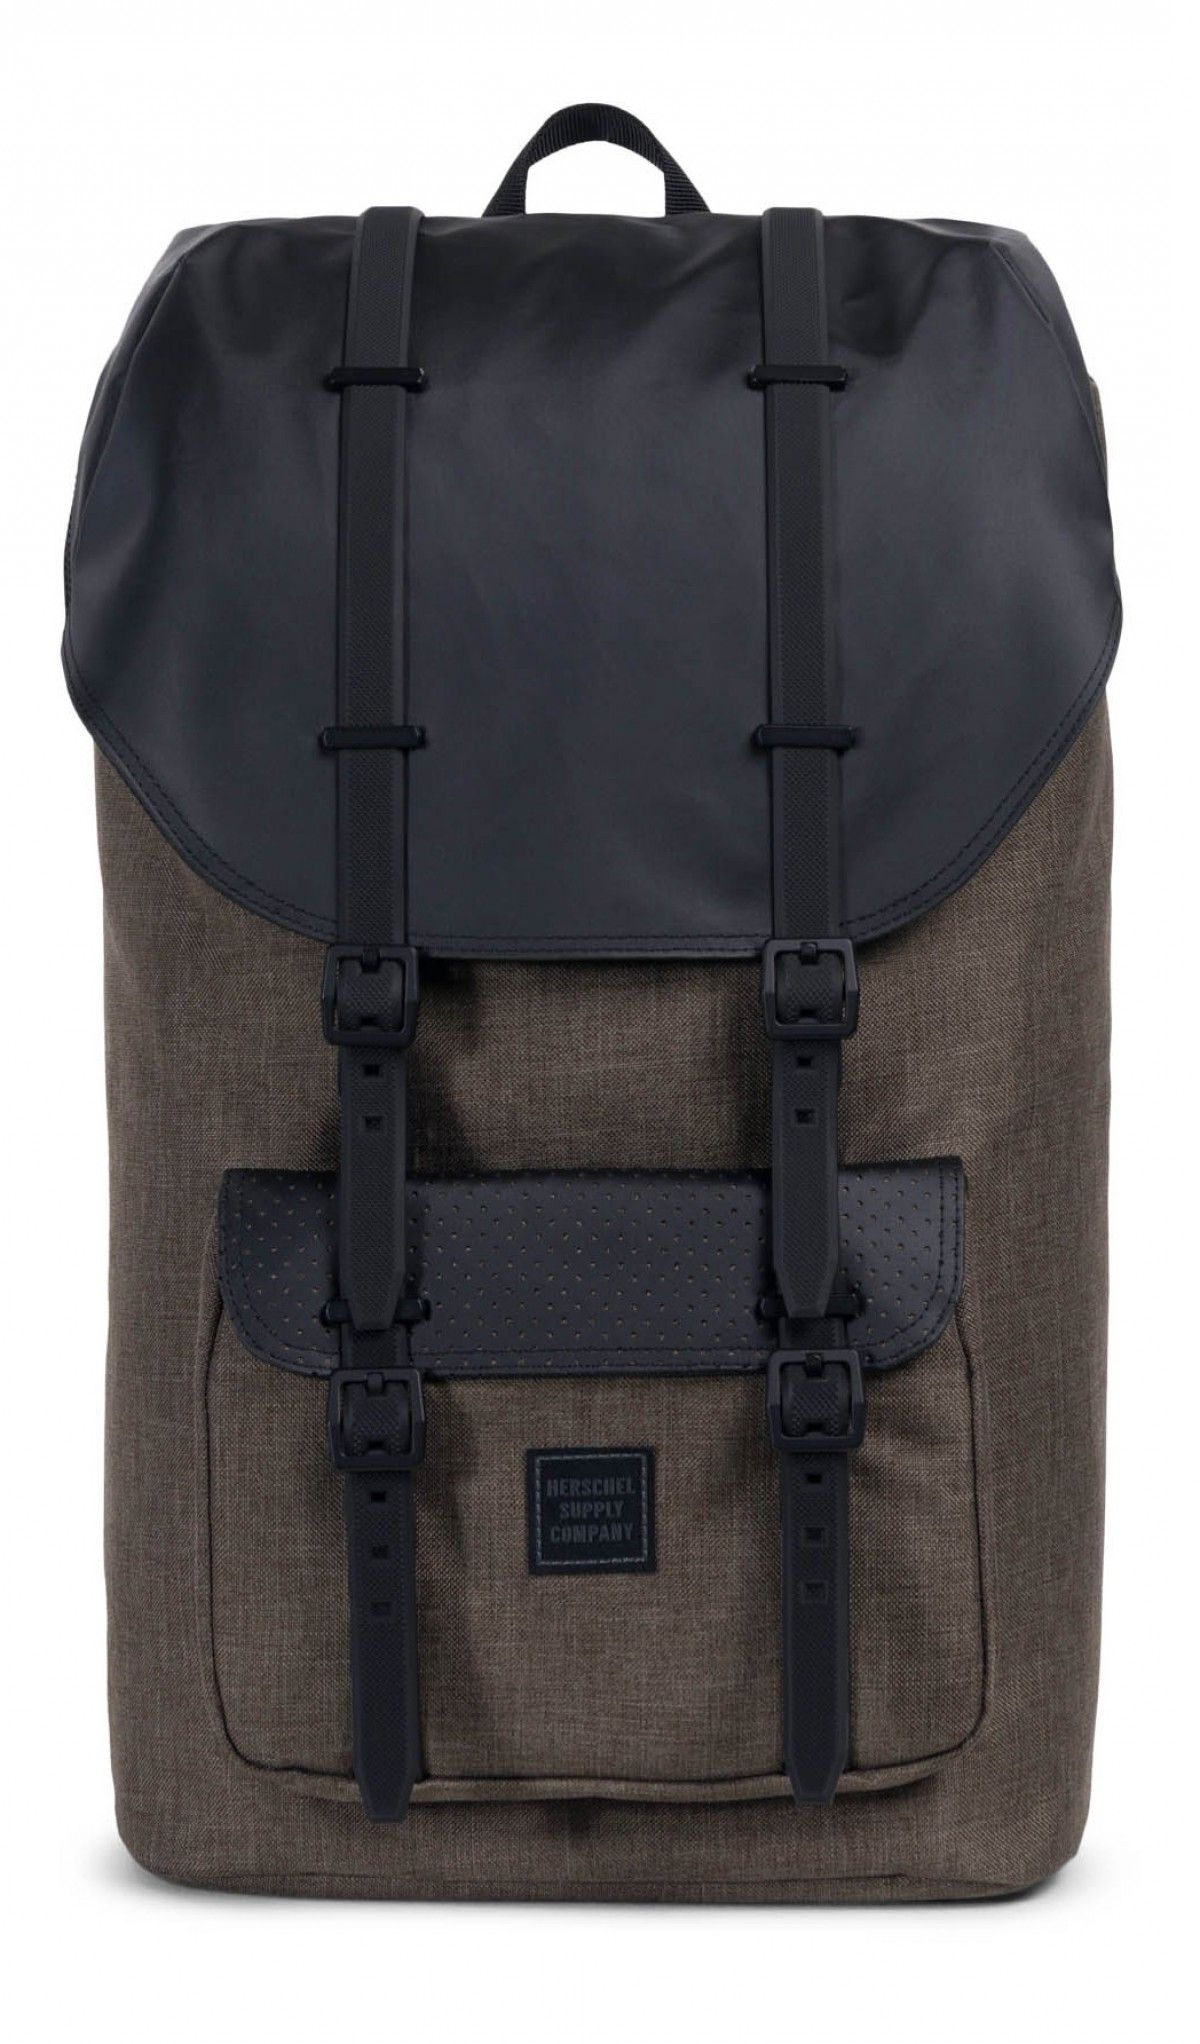 216bf76f7a7 Herschel Little America Backpack Aspect Canteen Crosshatch Black ...